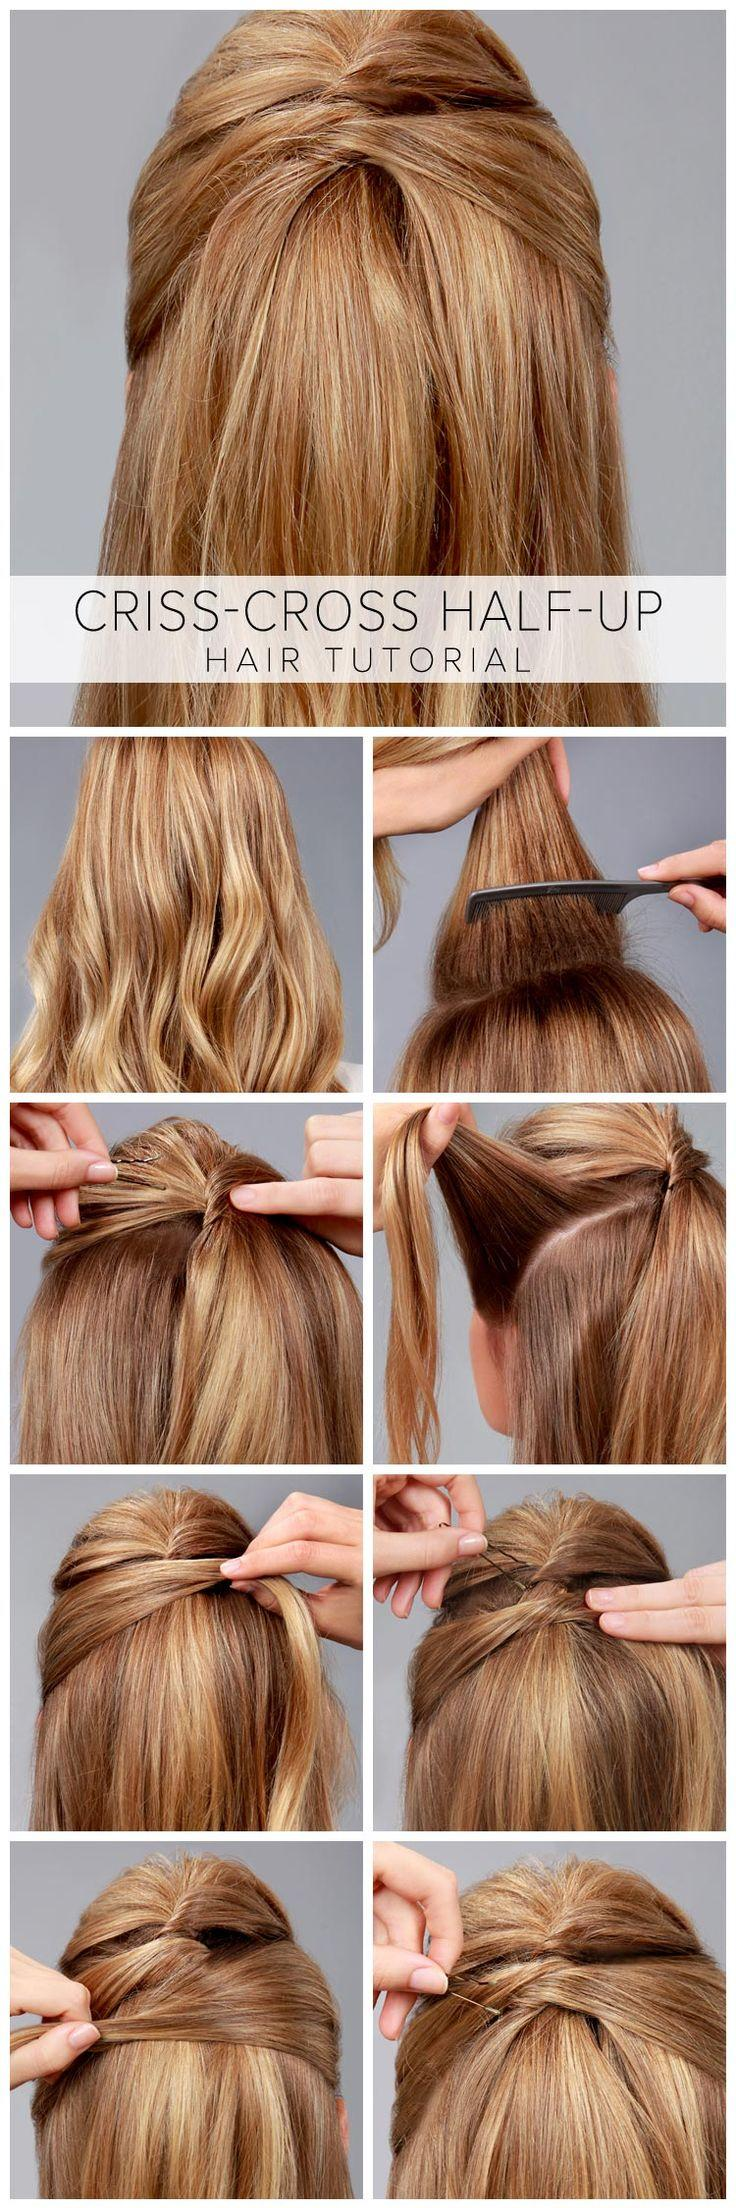 Свадьба - LuLu*s How-To: Criss-Cross Half-Up Hair Tutorial